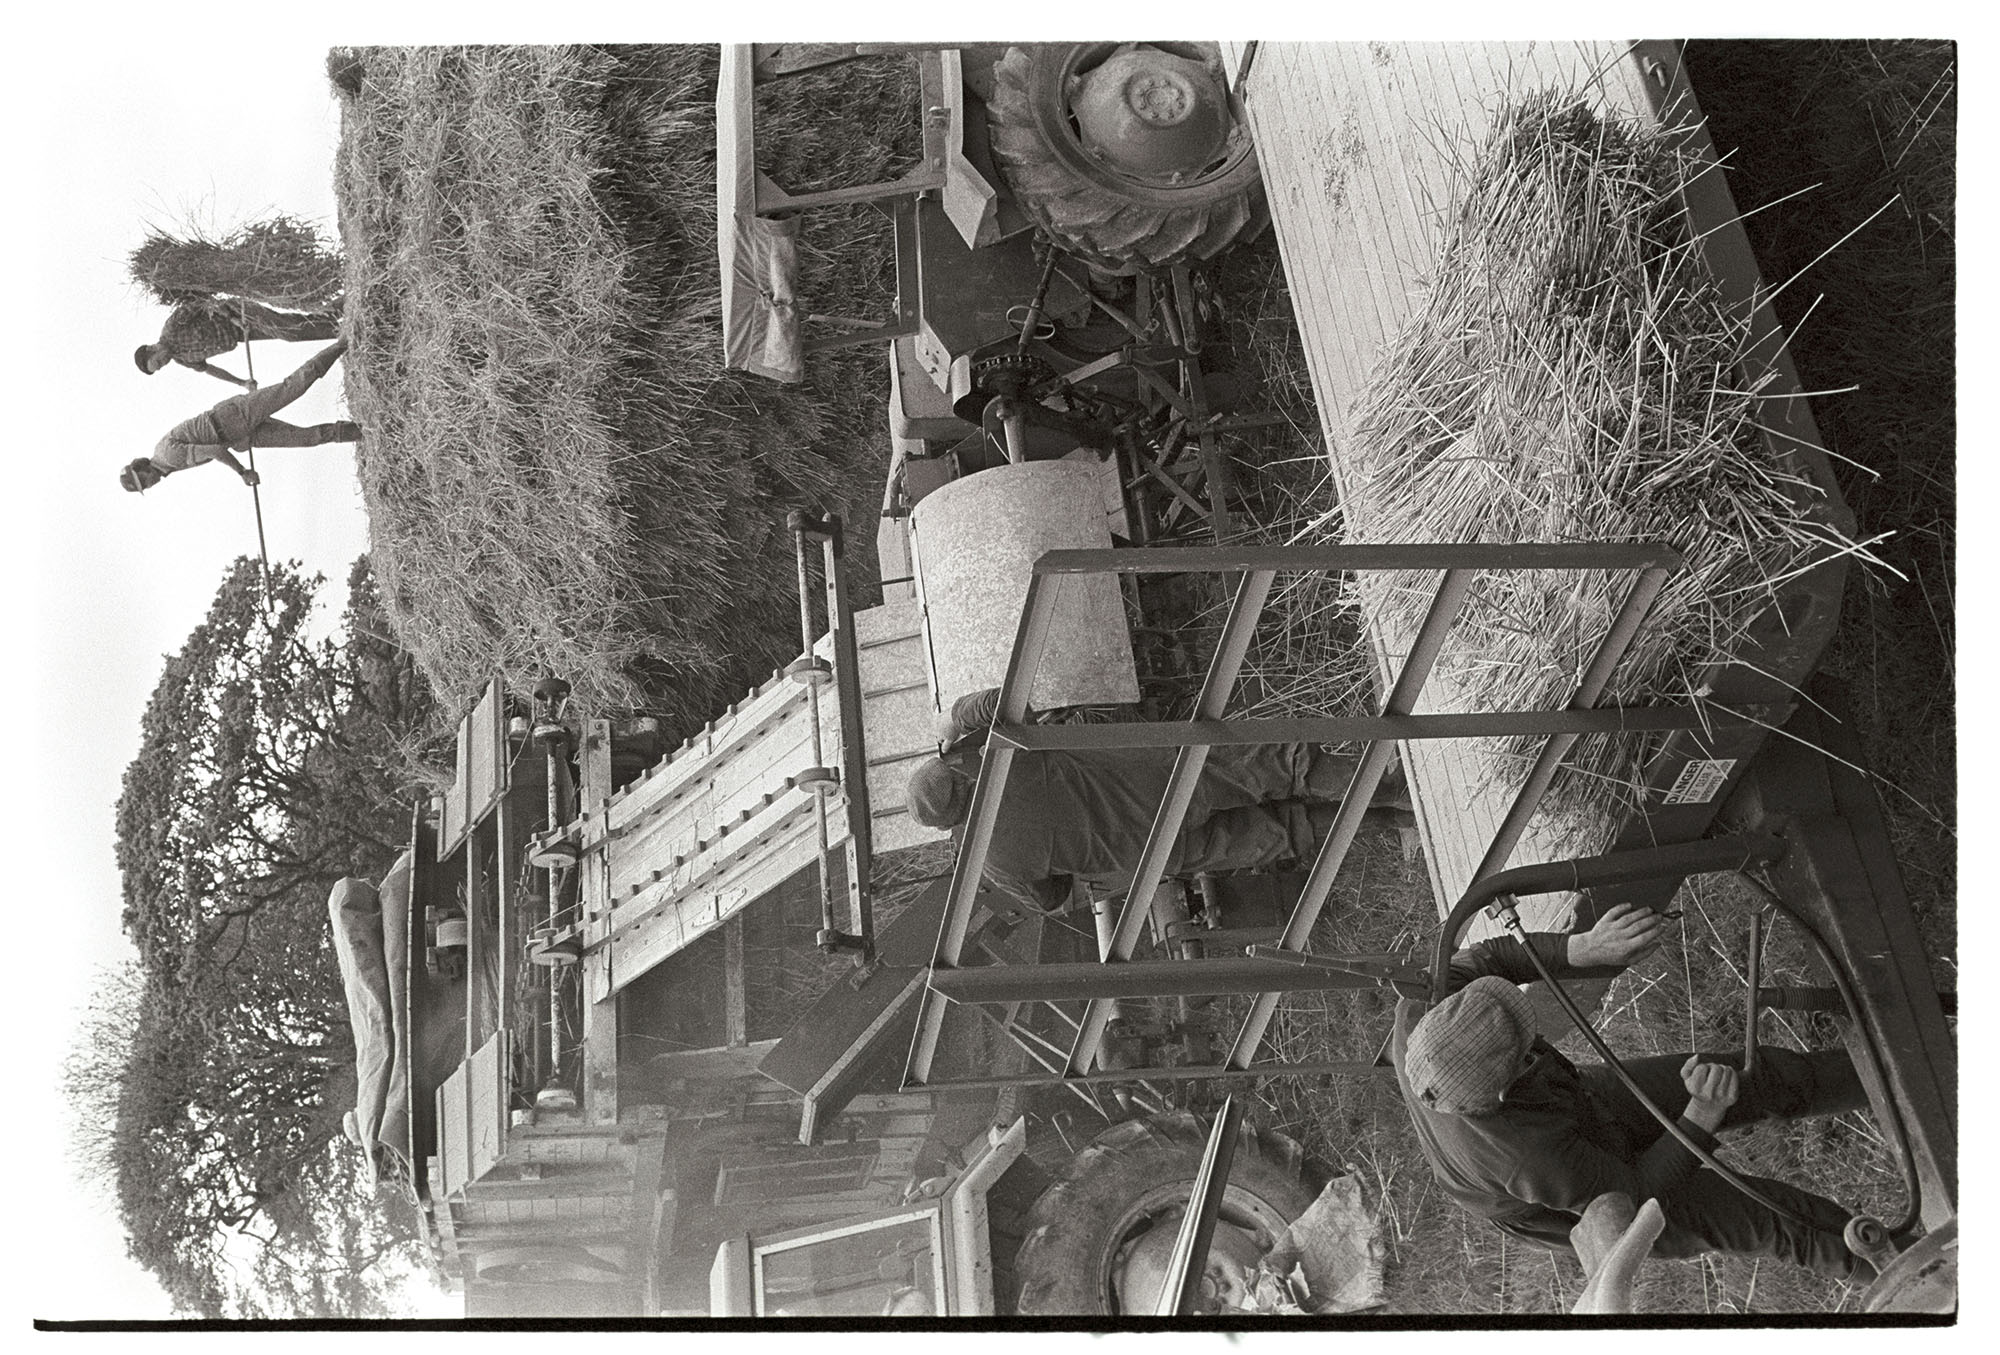 Reed comber, machine, wheat ricks, nitches loaded on trailer. <br /> [Two men stood on top of a wheat rick loading reed onto a reed comber attached to two tractors at Westacott Barton, Riddlecombe. Dudley Middleton is stood on the right. There is a trailer being loaded with nitches in the foreground.]